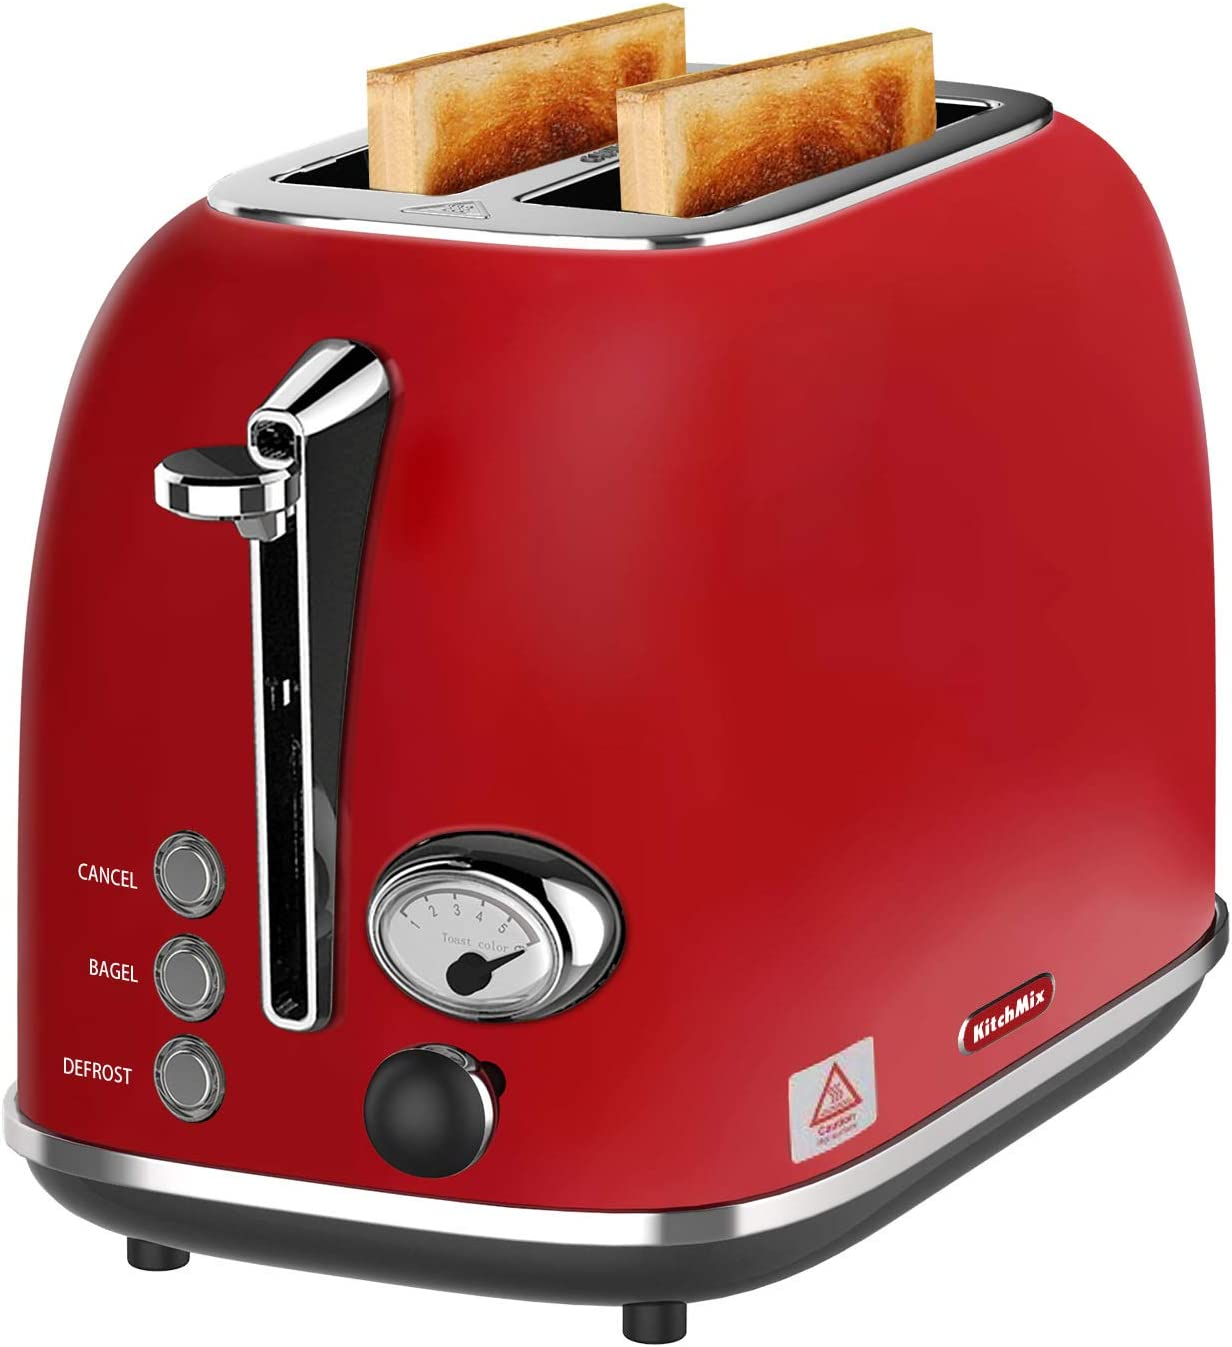 2 Slice Toaster, KitchMix Retro Stainless Steel Bread Toasters with 6 Settings, 1.5 In Extra Wide Slots, Bagel/Defrost/Cancel Function, Removable Crumb (Red)